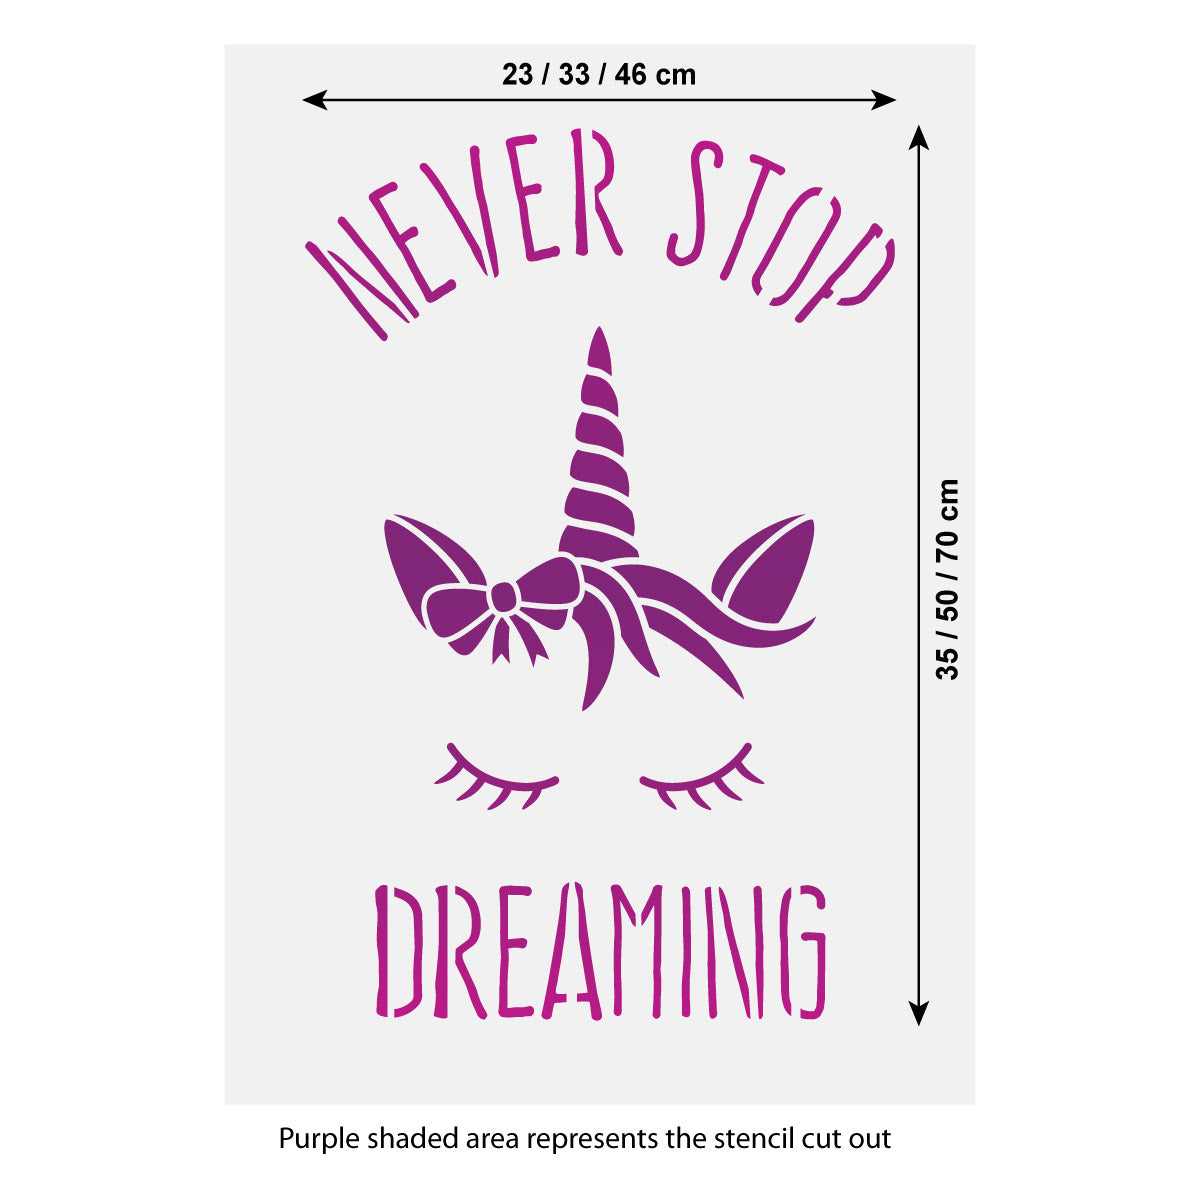 CraftStar Never Stop Dreaming Unicorn Stencil Size Guide